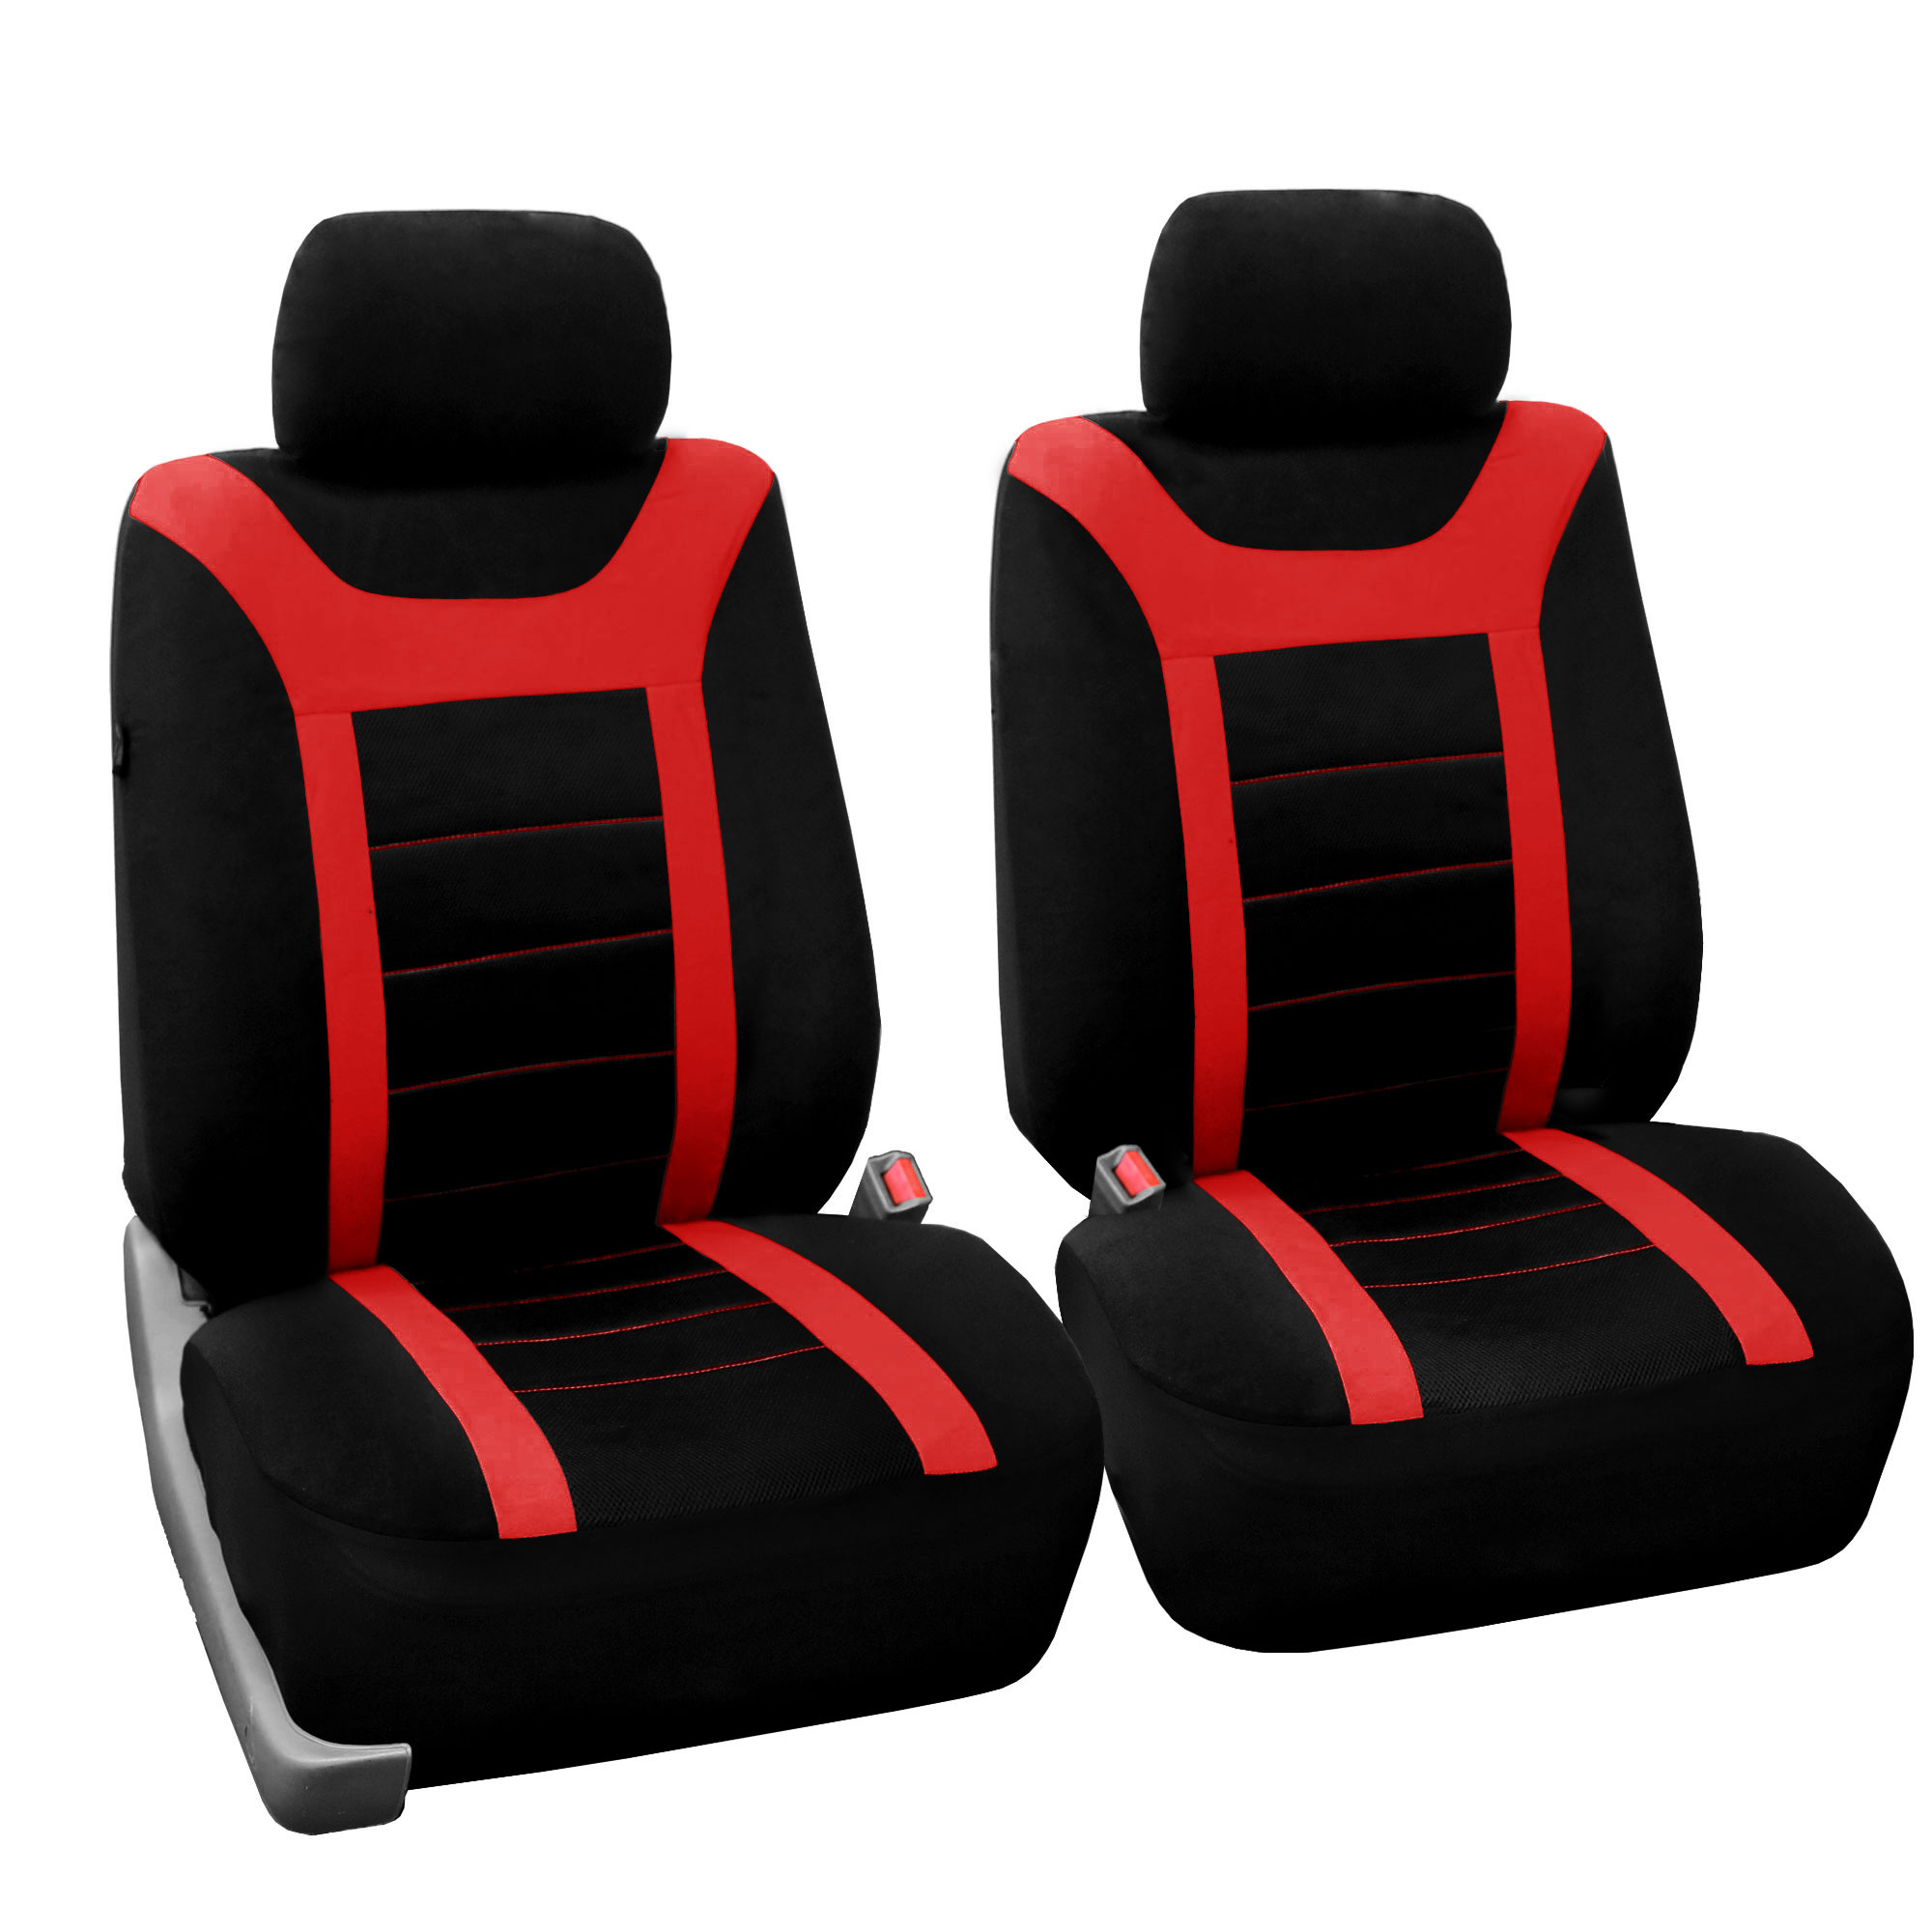 FH Group Red And Black Airbag Compatible Split Bench Sports Car Seat Cover Full Set